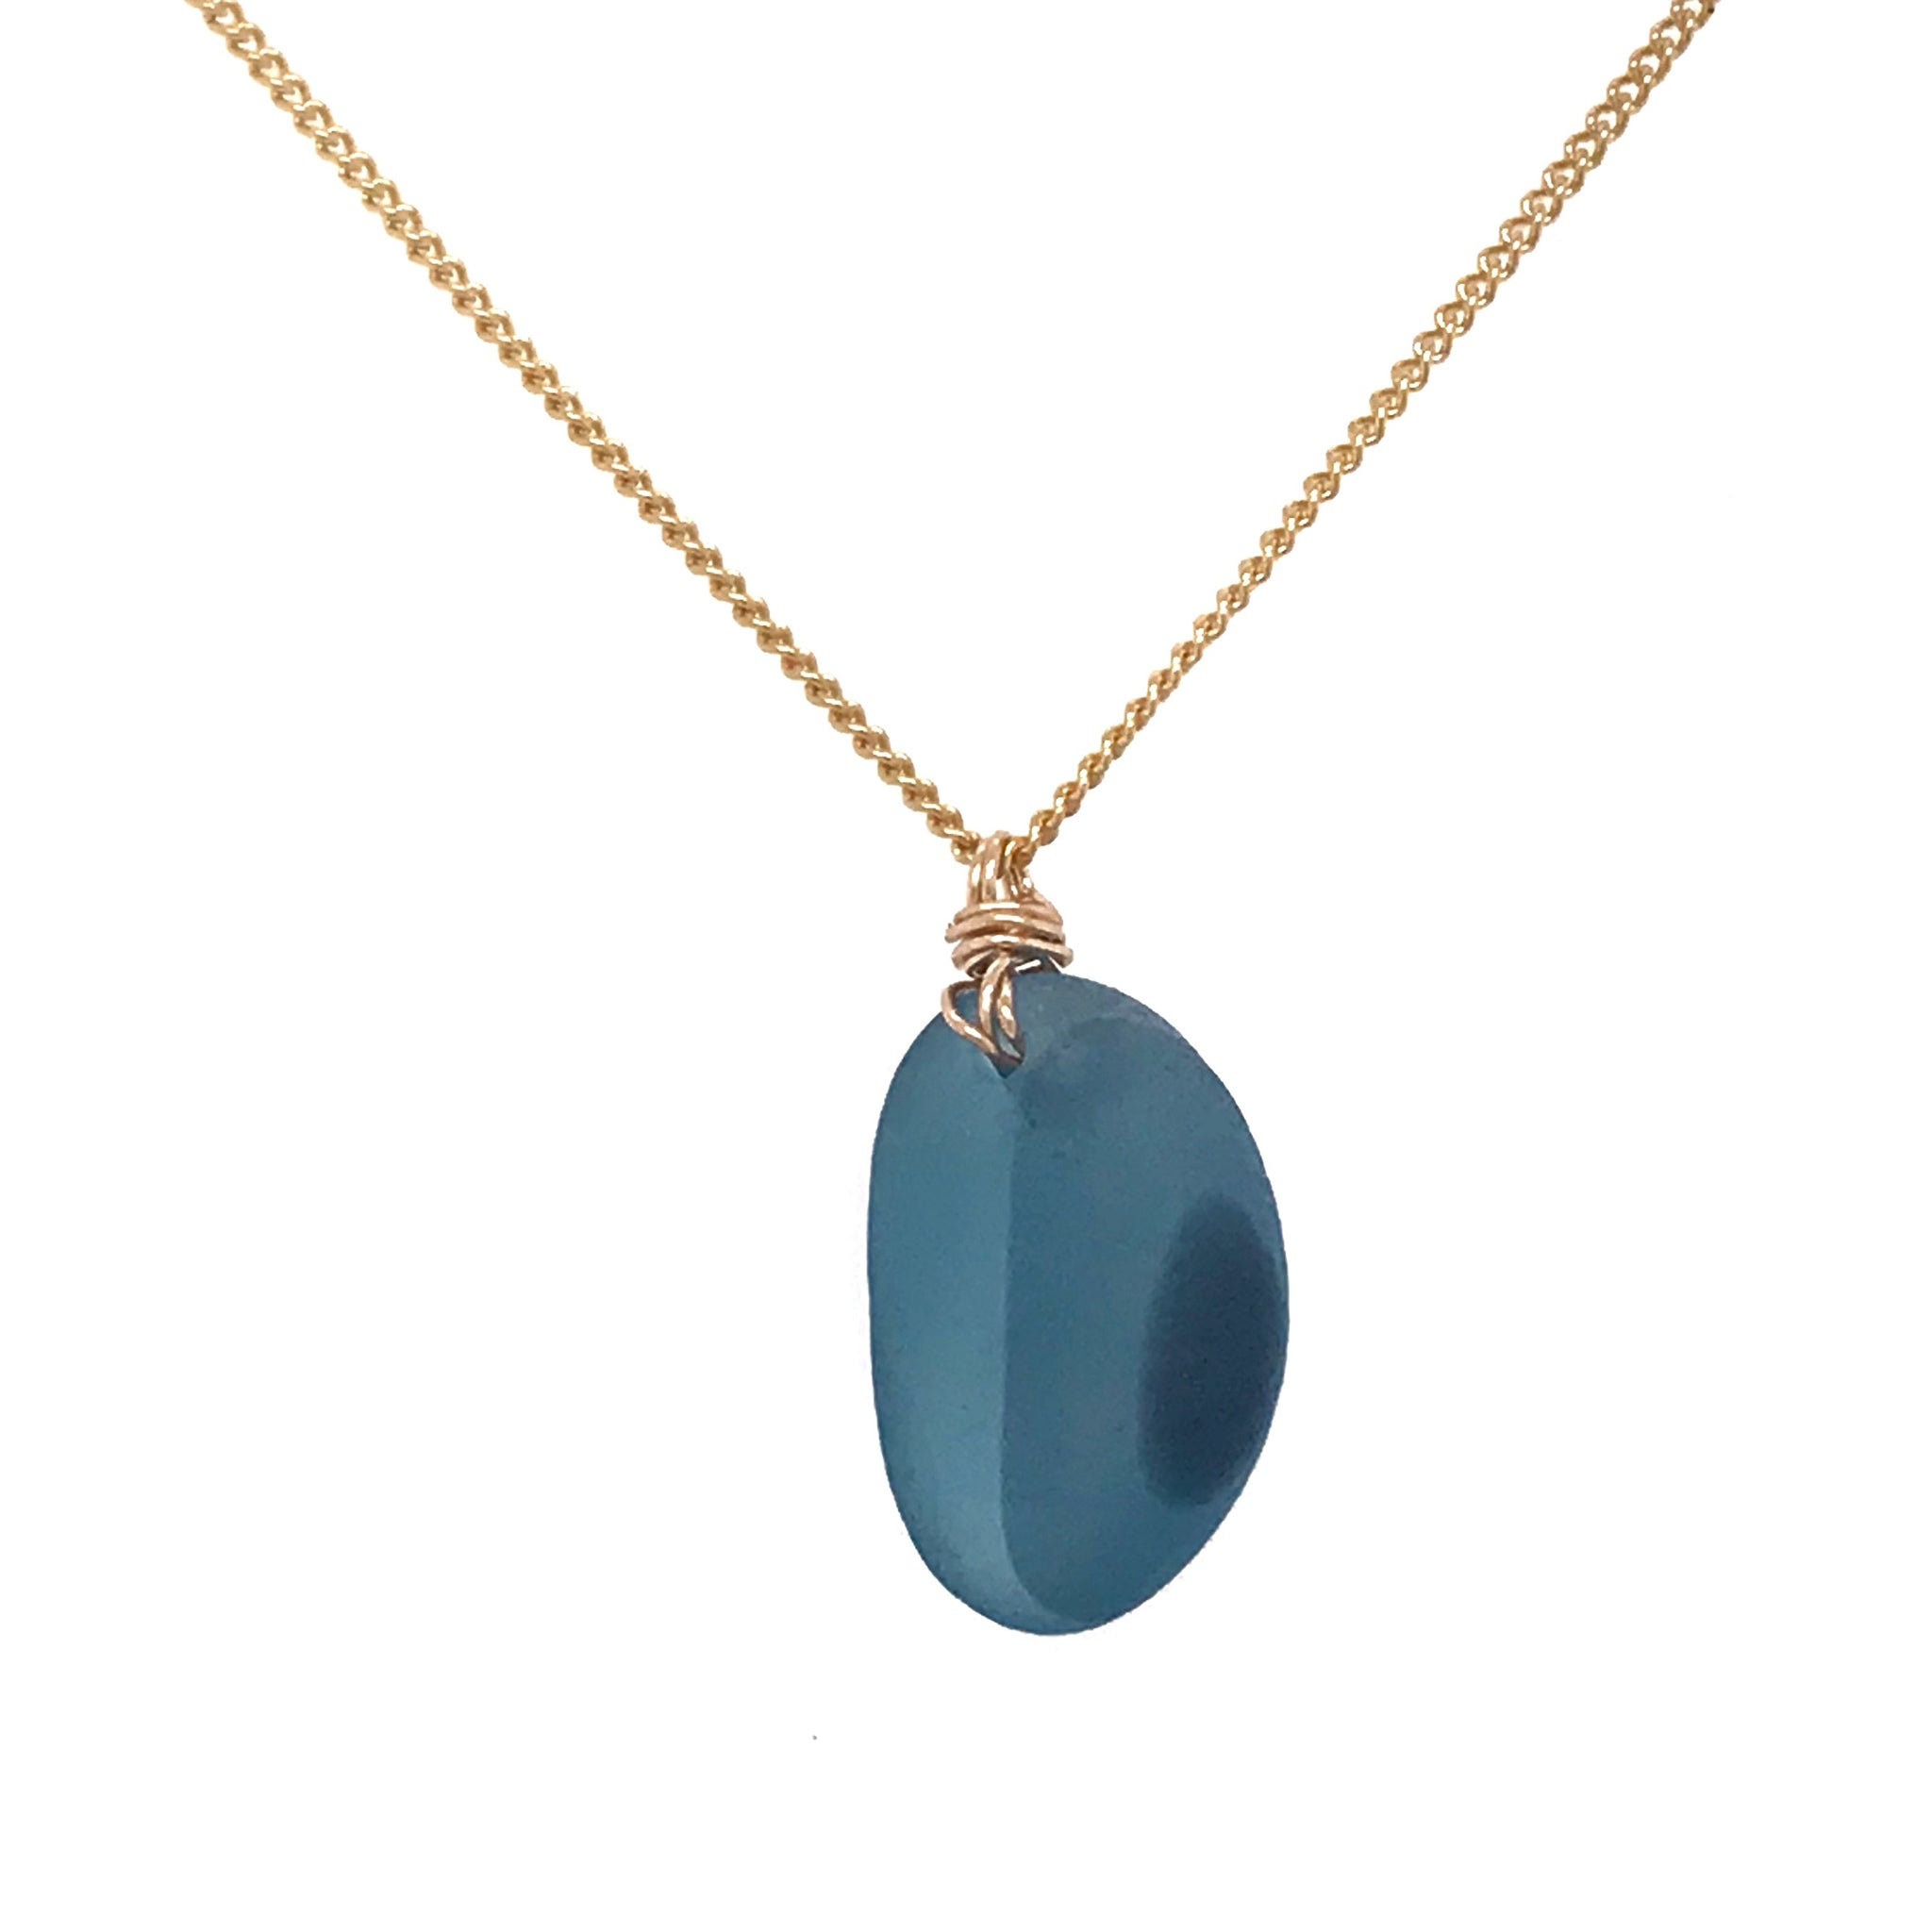 cobalt-blue-multi-sea-glass-necklace-gold-chain-kriket-broadhurst-christmas-gifts-sydney